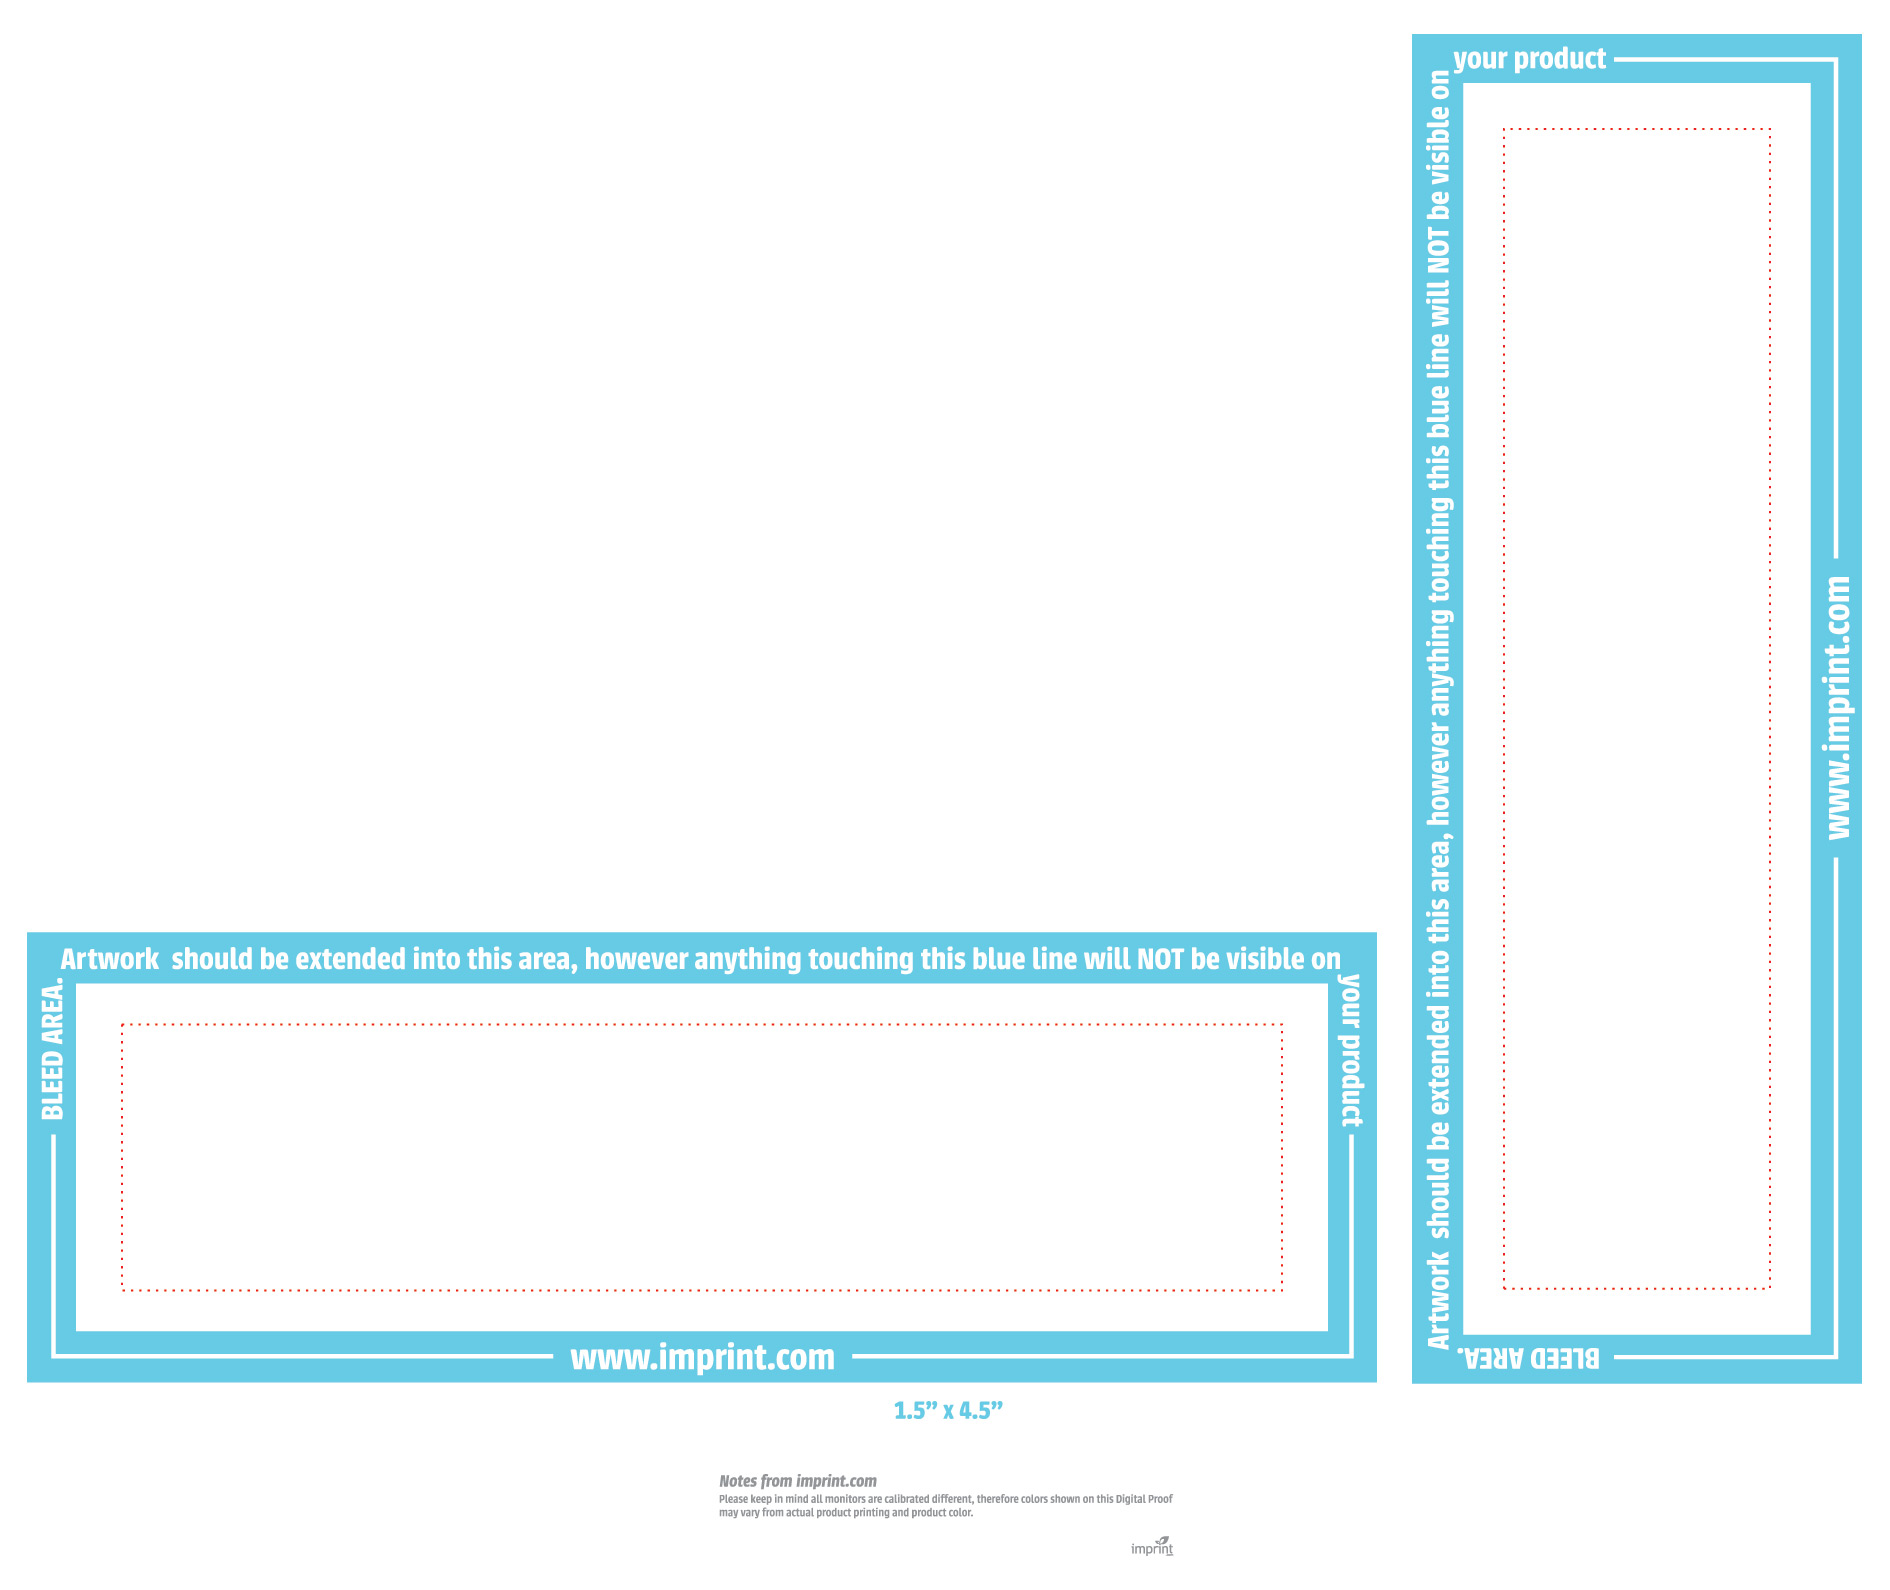 Product templates imprint 15 x 45 inch rectangle custom buttons download download download download maxwellsz